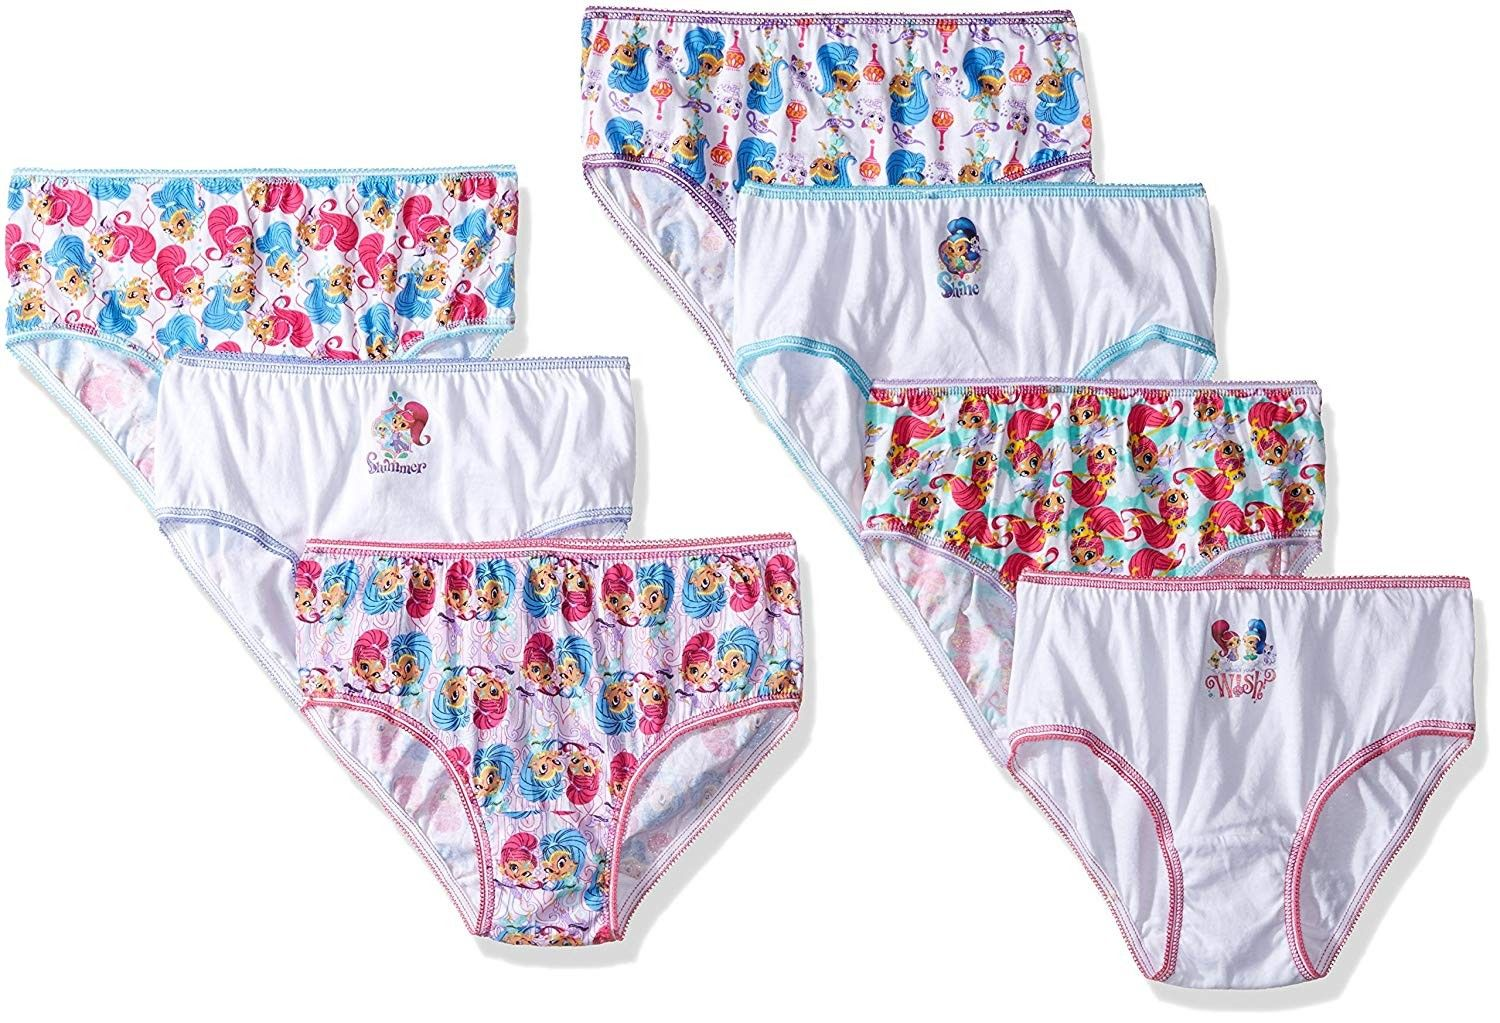 59a6c39964 Girls' Little 7pk - Assorted - 8 - CU12KRGZHBF - Girls' Clothing,  Underwear, Panties #Panties #Girls' #Clothing # #Underwear # #Panties